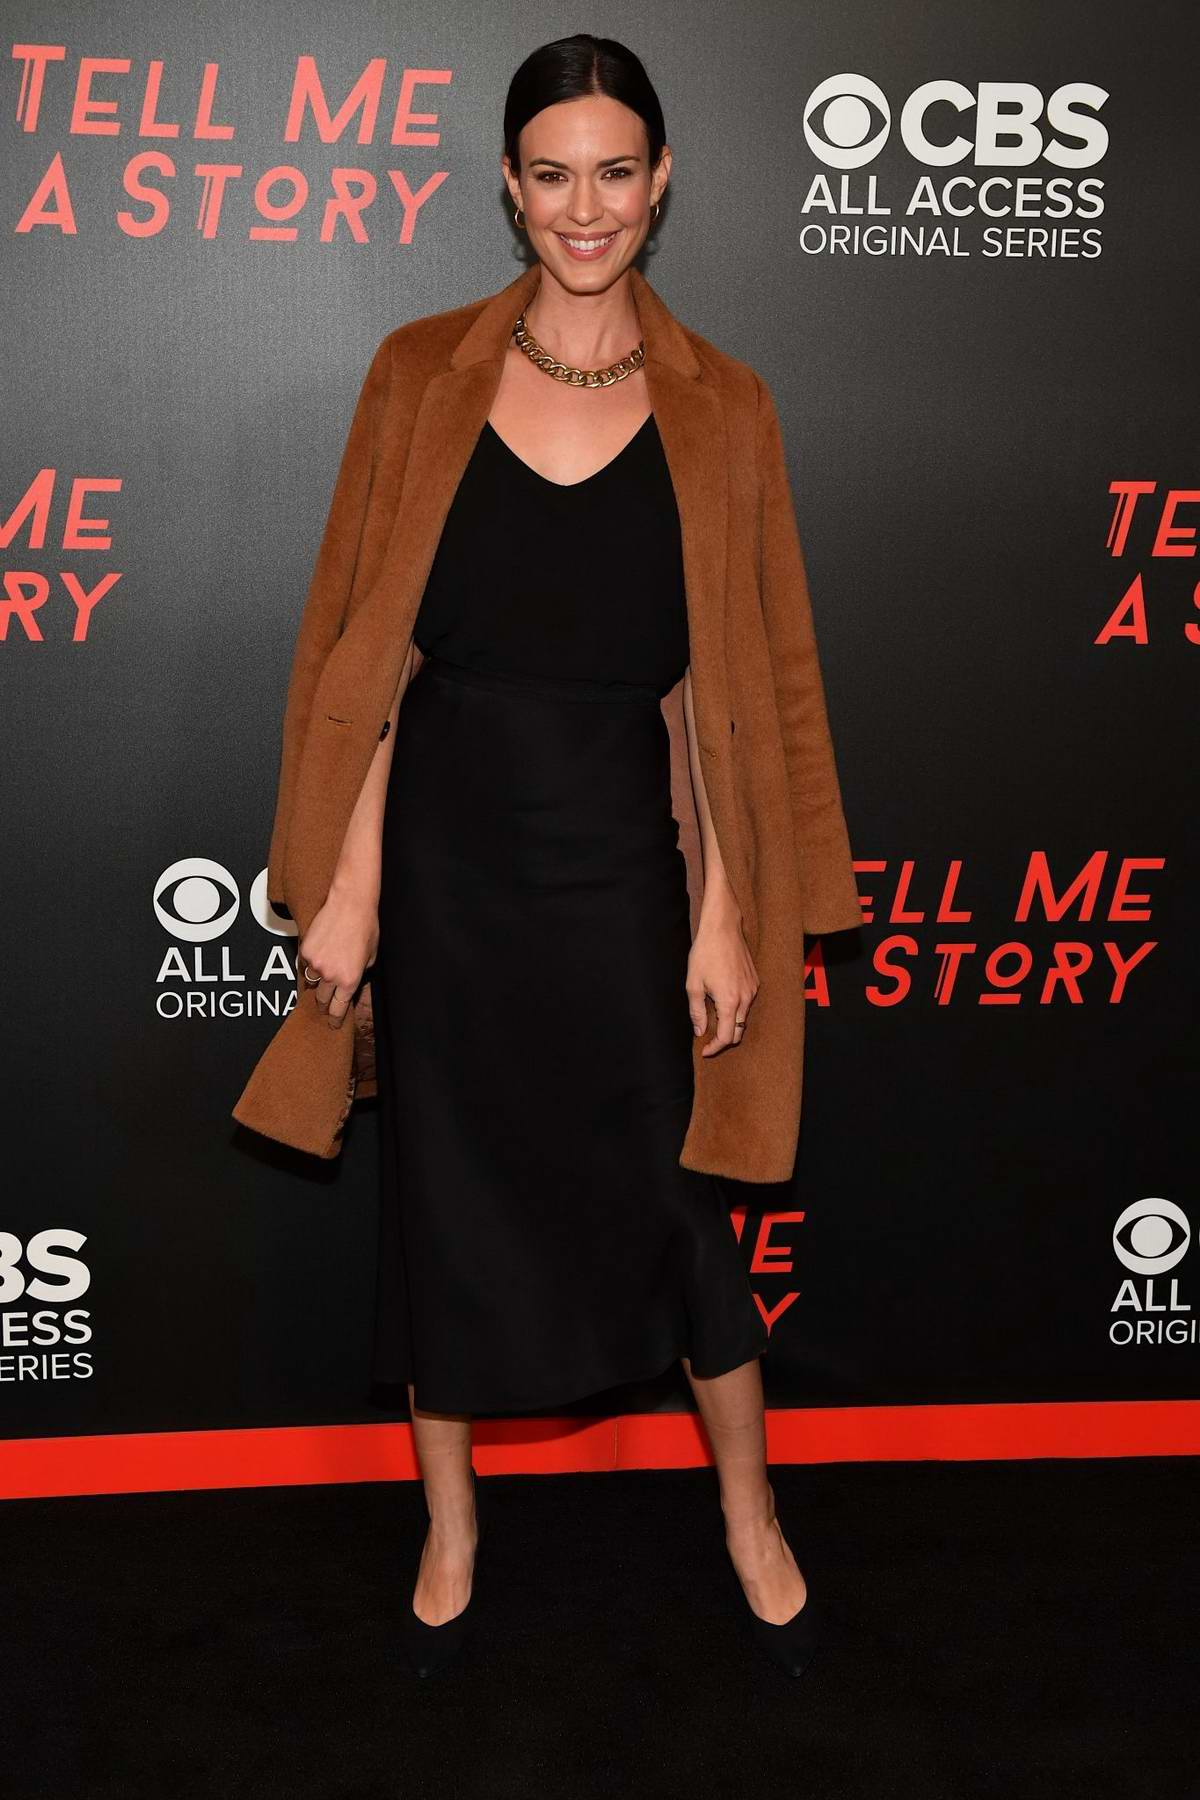 Odette Annable attends the Nashville Premiere of 'Tell Me a Story', Season 2 at Ford Theater in Nashville, TN